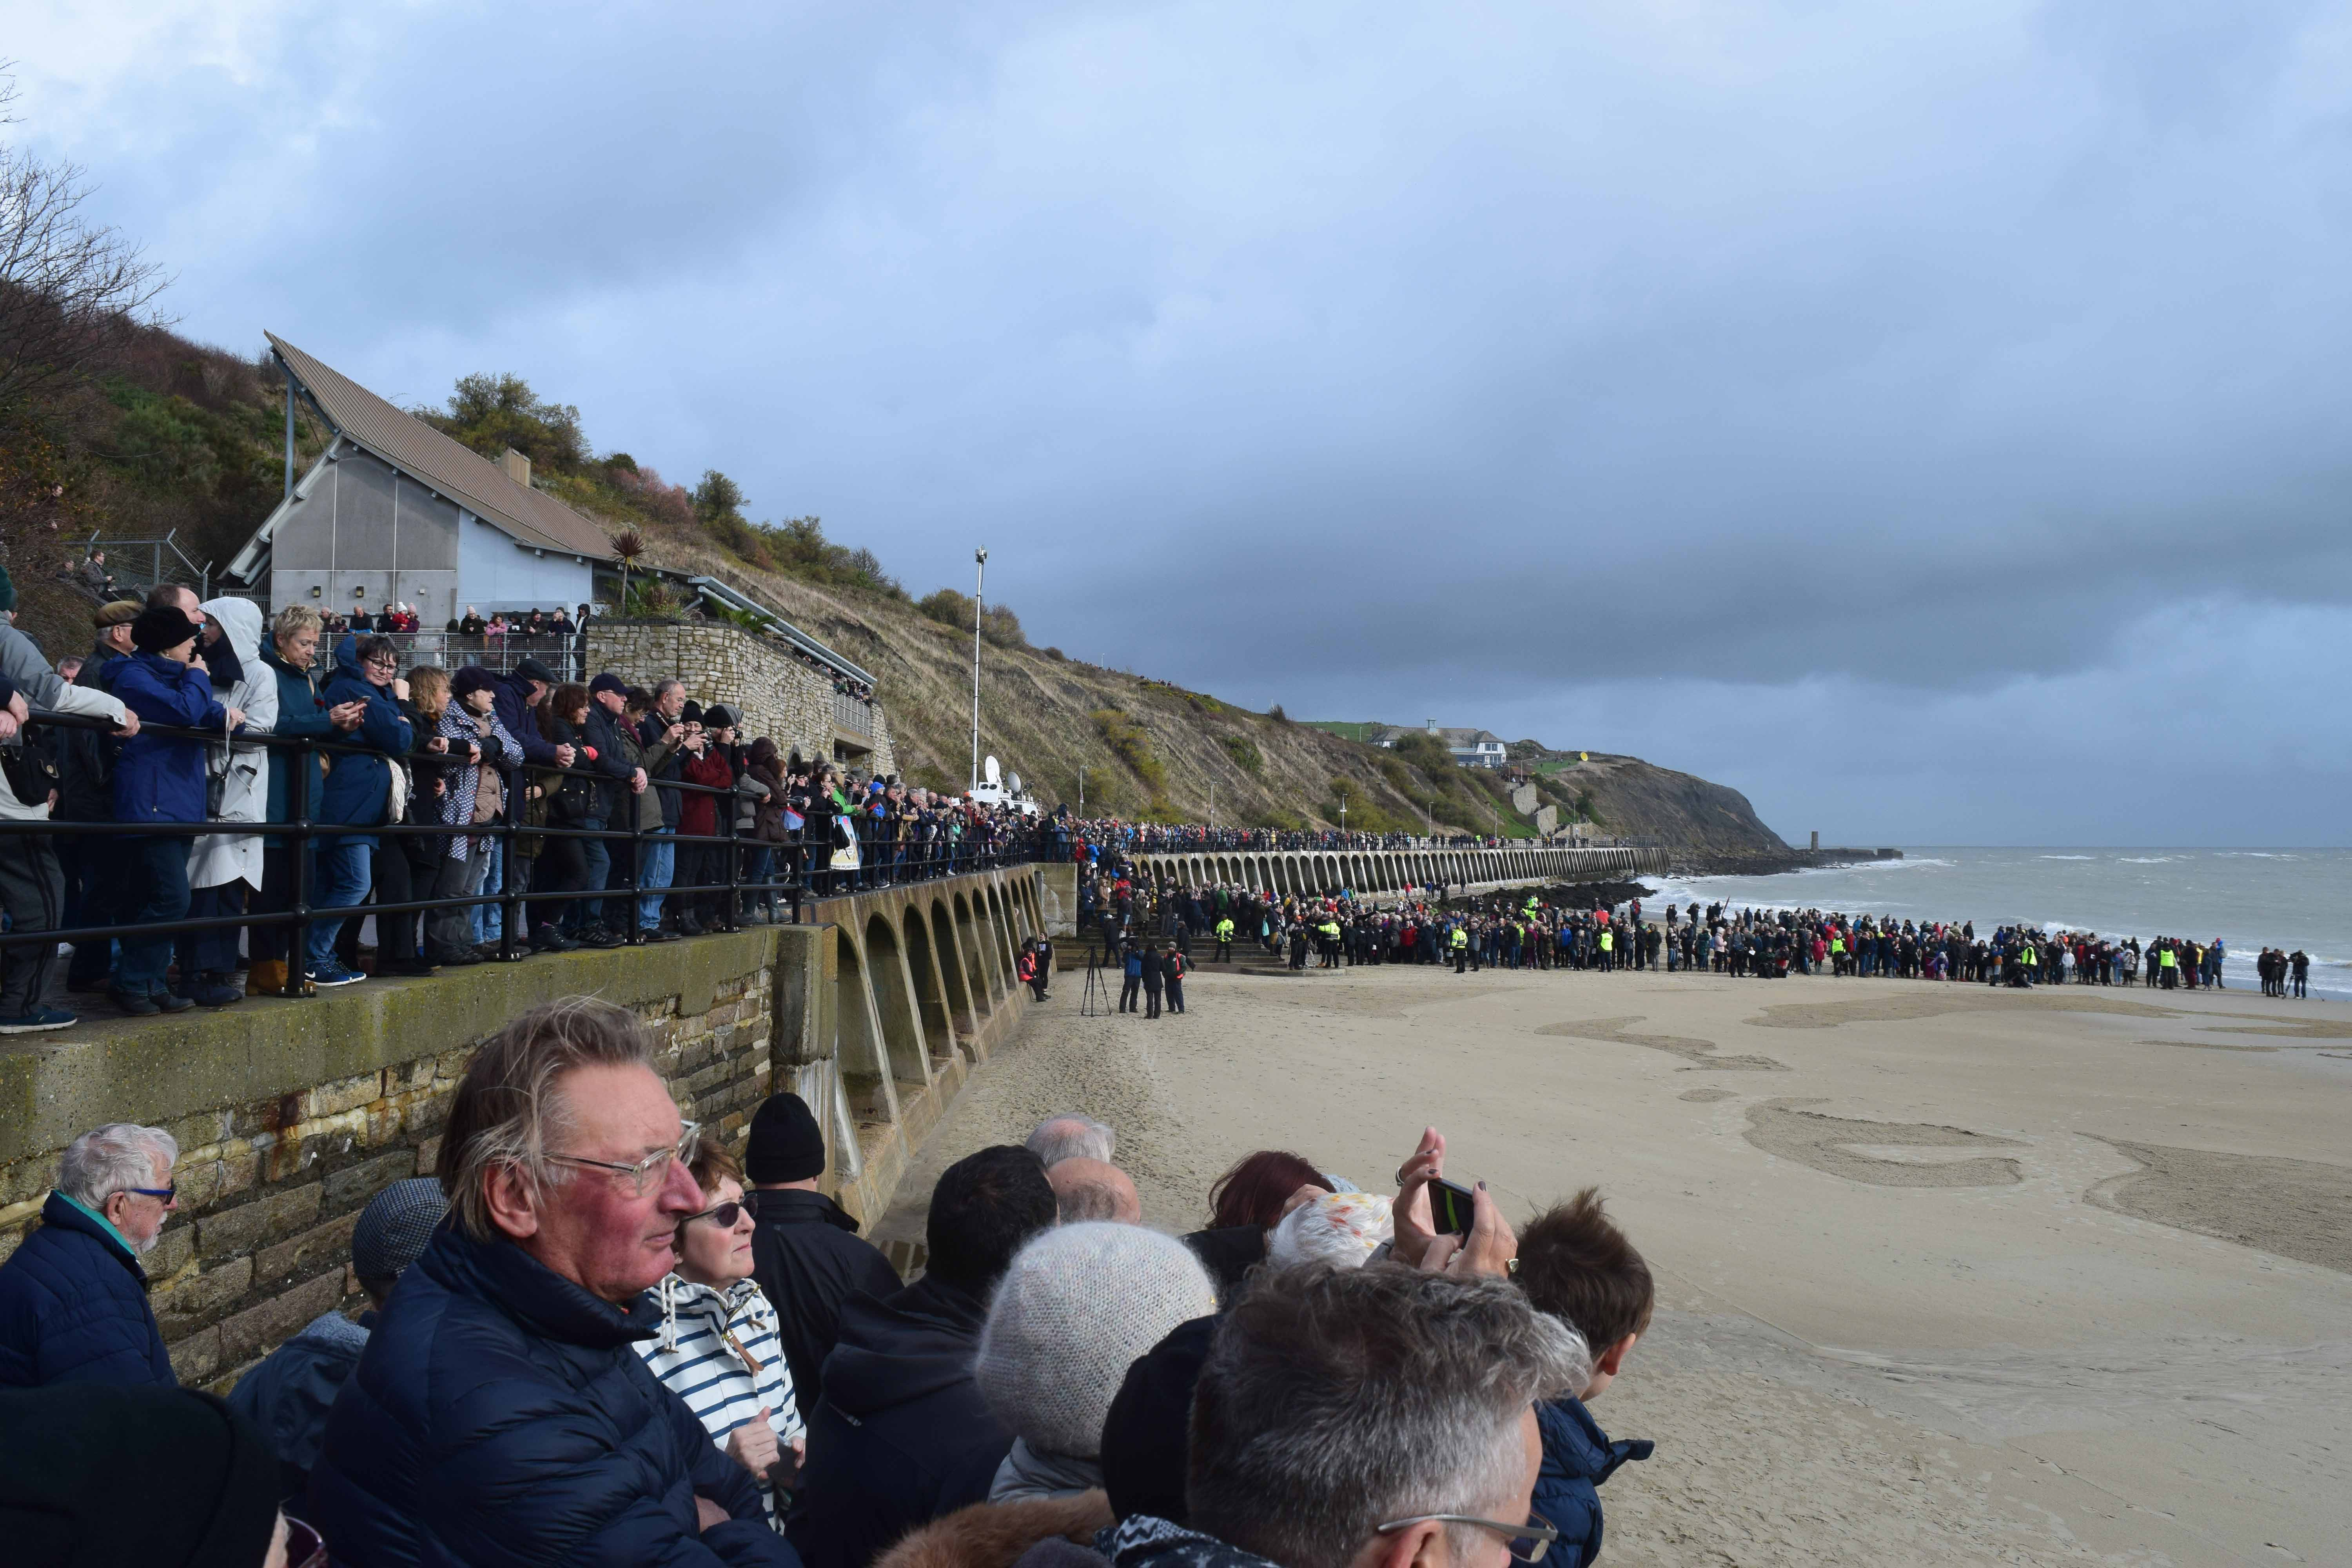 pagesofthesea_Crowds-at-Sunny-Sands new